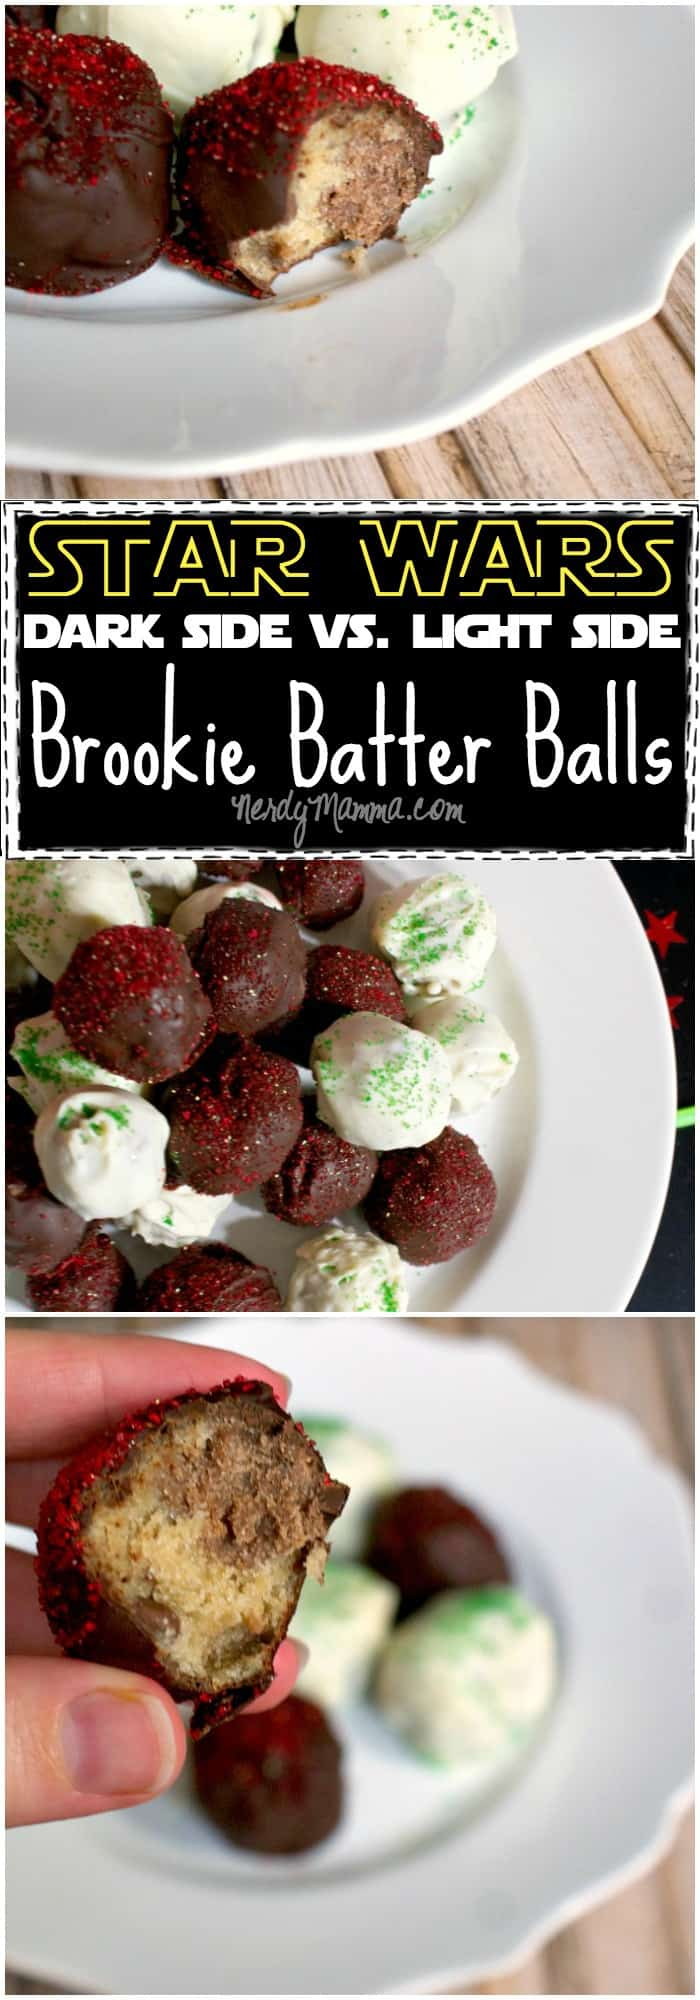 Love these brookie batter balls! So delicious. And the perfect snack for a Star Wars party! Come to the dark side...we have cookies...heh.